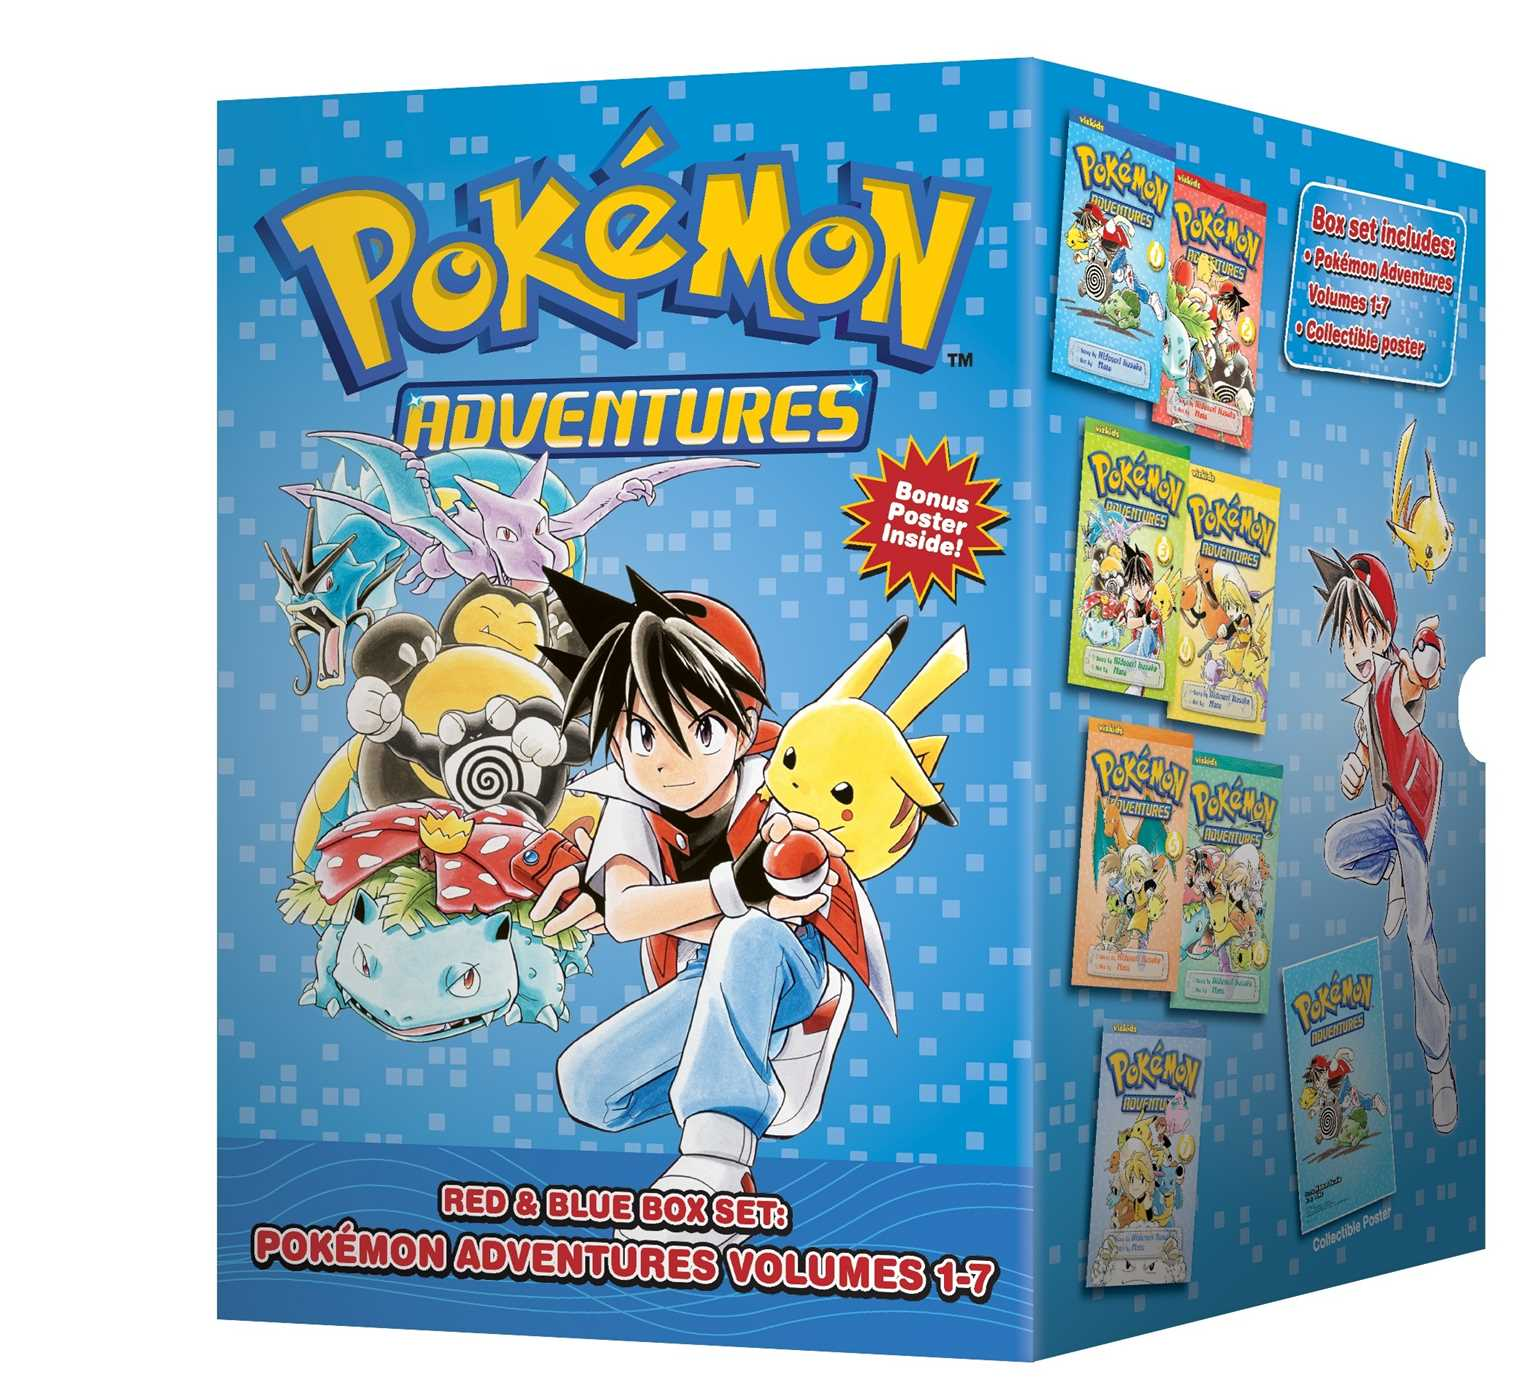 Pokemon-adventures-red-blue-box-set-set-includes-vol-1-7-9781421550060_hr